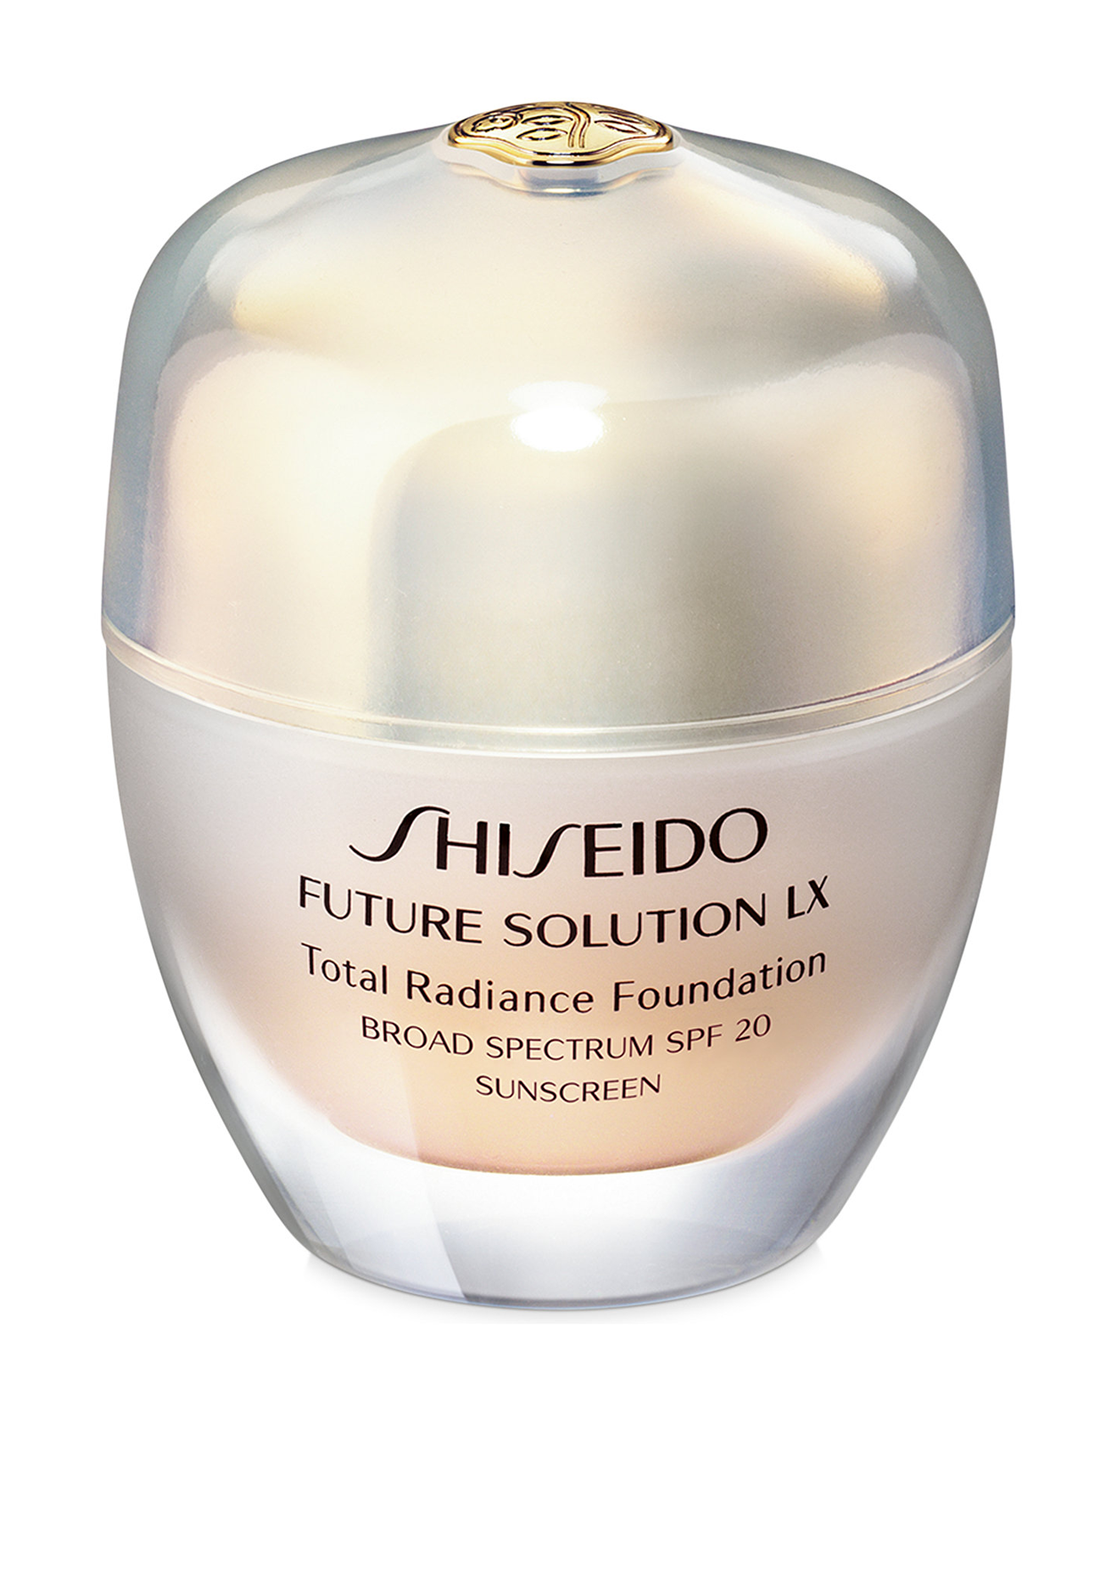 Shiseido Future Solution LX Total Radiance Foundation SPF15, Natural Fair Ivory 140